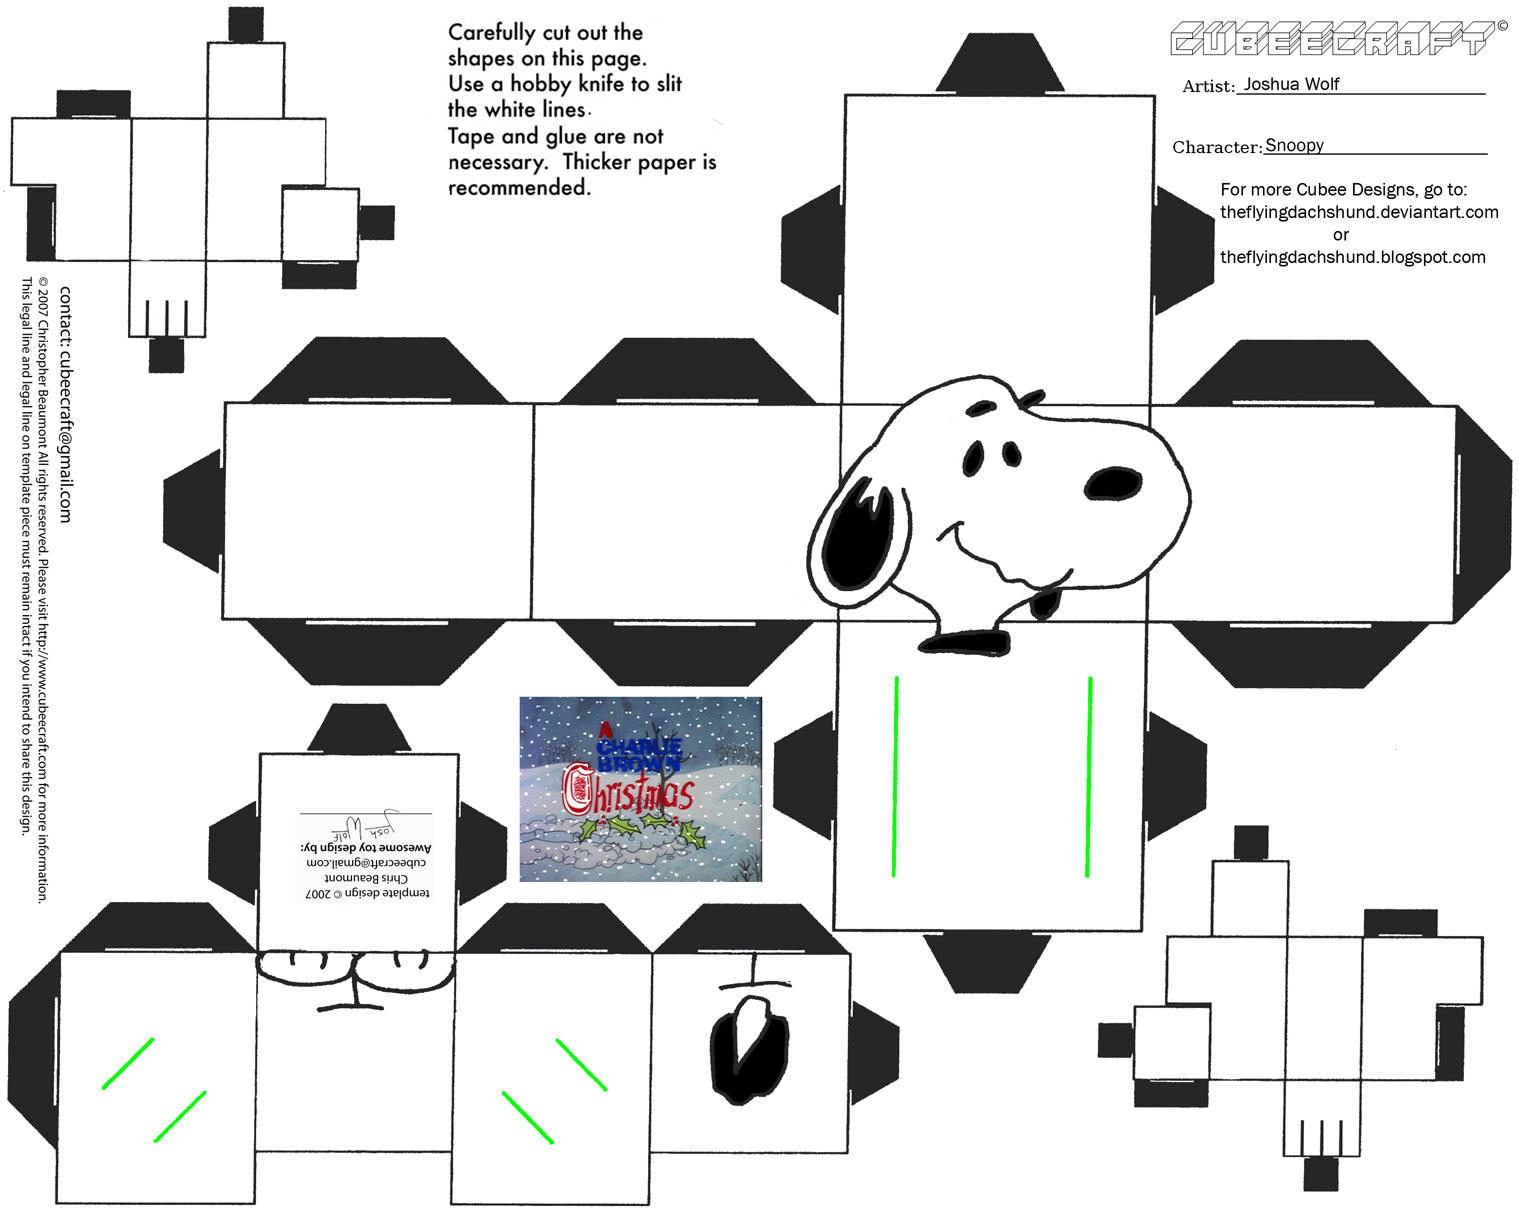 Charlie brown christmas tree coloring page - Xmas4 Snoopy Cubee By Theflyingdachshund On Deviantart